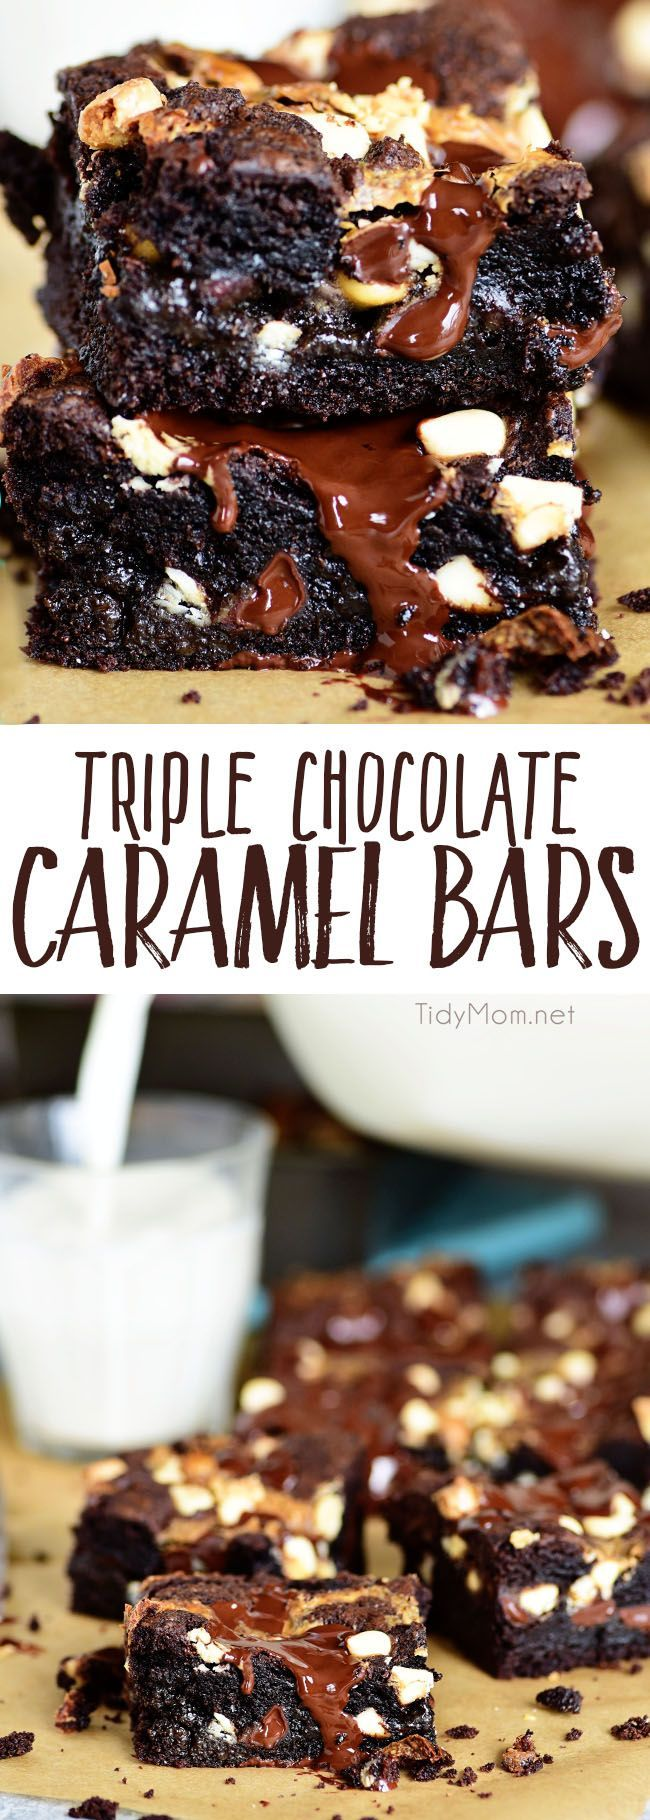 Triple Chocolate Caramel Bars are like a thick chewy brownie only better!!  These indulgent cake mix bars are always a hit and easy to make! Print the full recipe at TidyMom.net via @tidymom